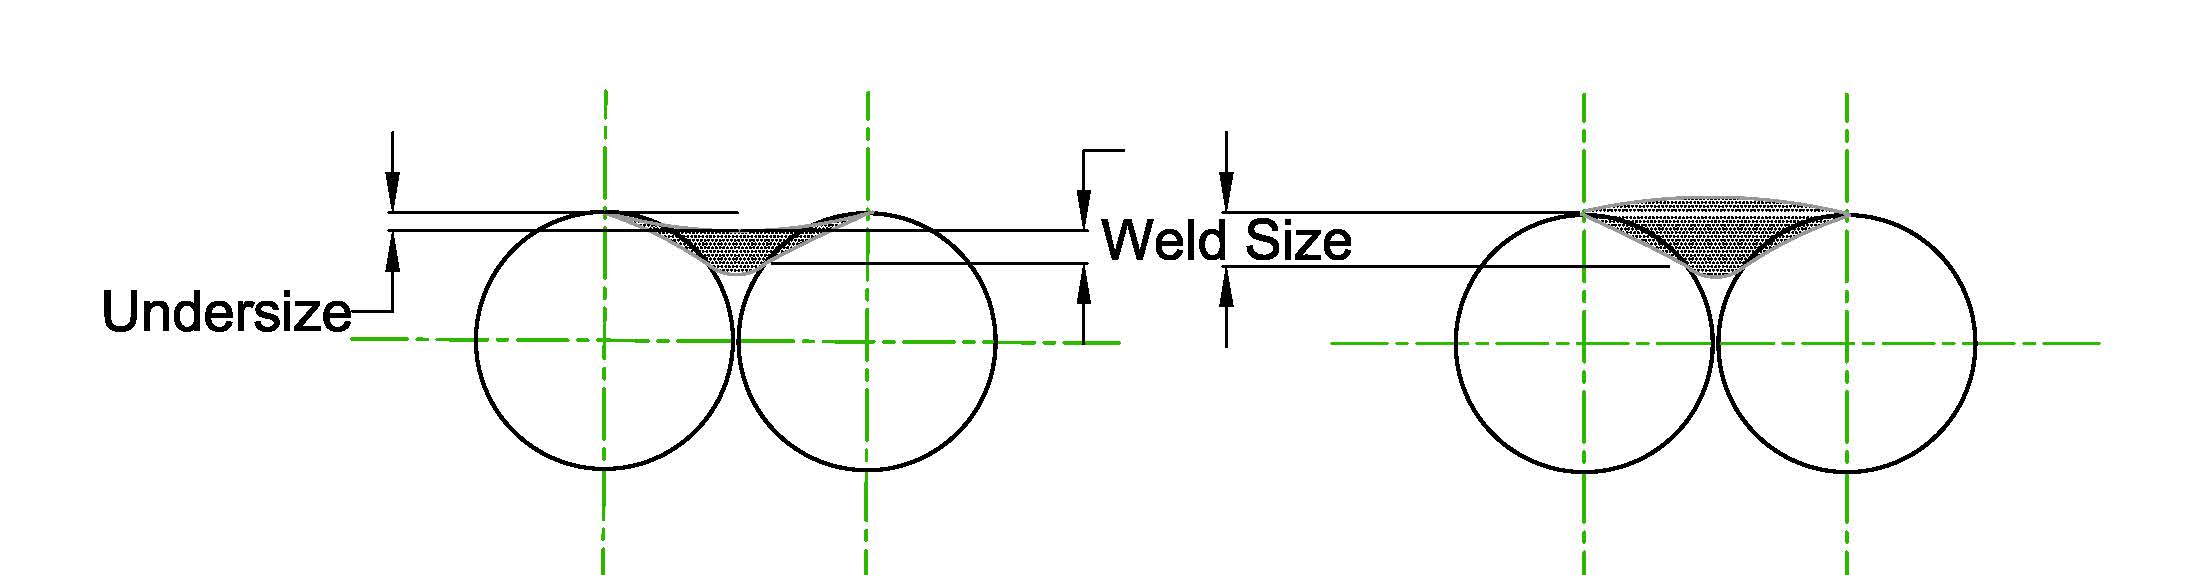 Flare Bevel Weld Size Aws Weld Symbols